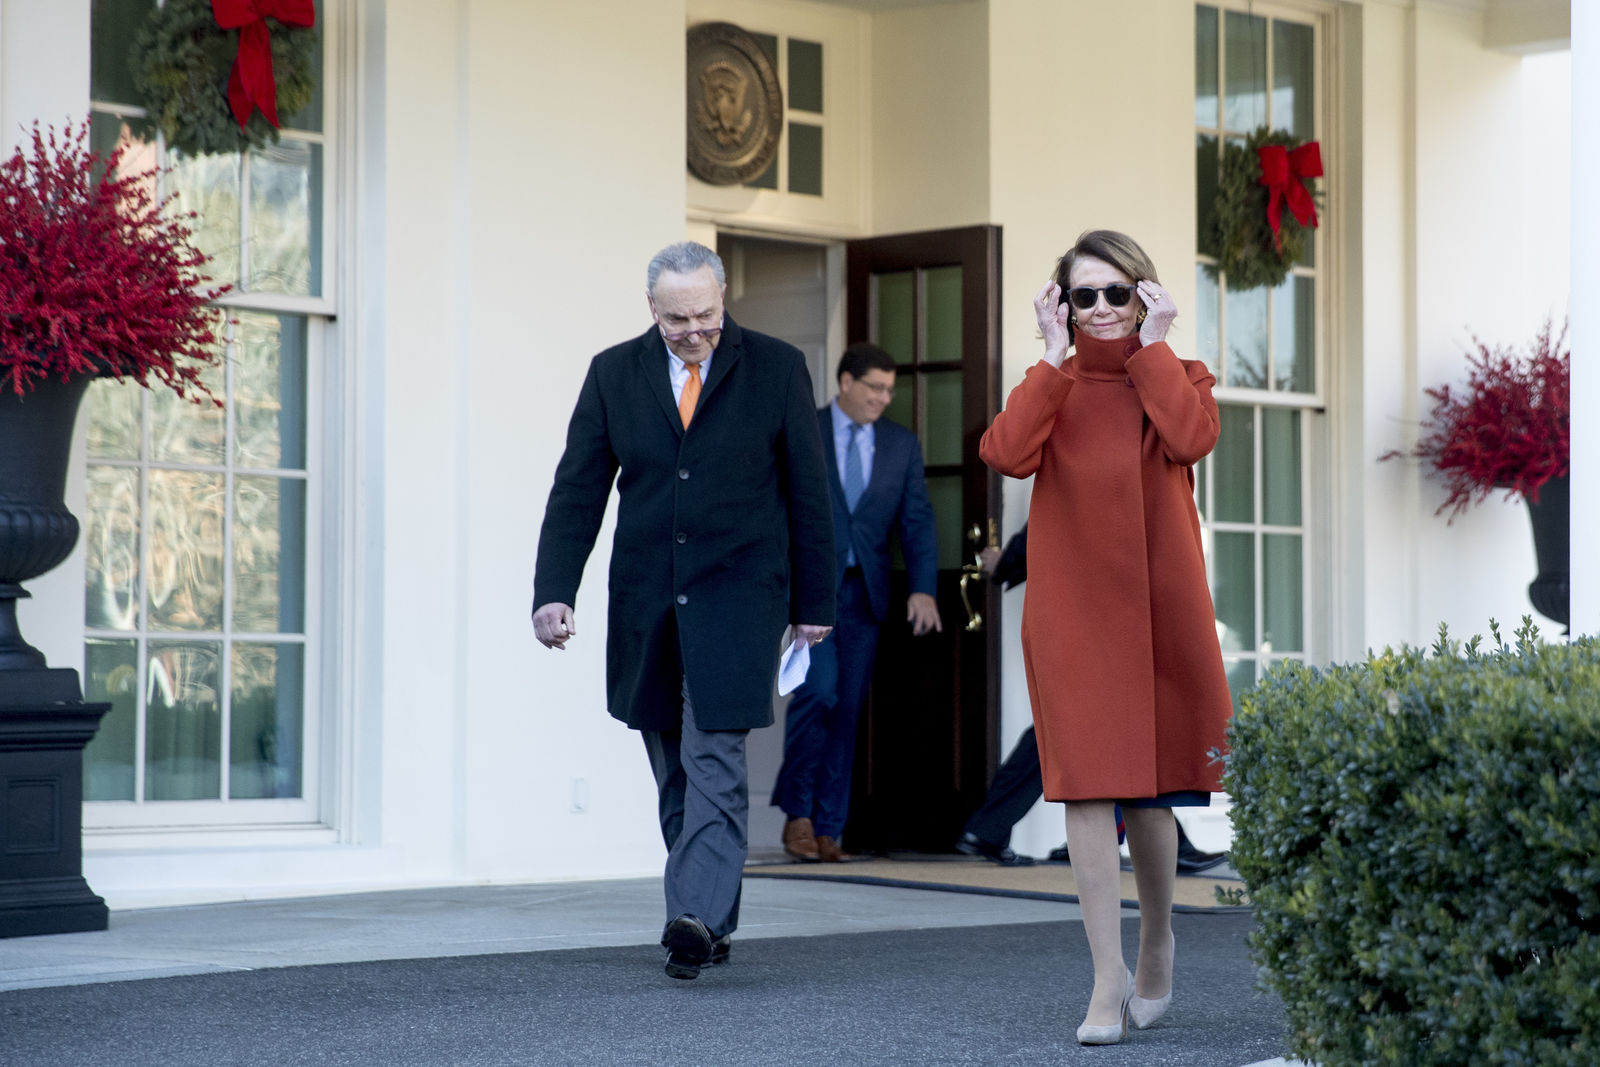 House Minority Leader Nancy Pelosi of Calif., right, and Senate Minority Leader Sen. Chuck Schumer of N.Y., left, walk out of the West Wing to speak to members of the media outside of the White House in Washington, Tuesday, Dec. 11, 2018, following a meeting with President Donald Trump. (AP Photo/Andrew Harnik)